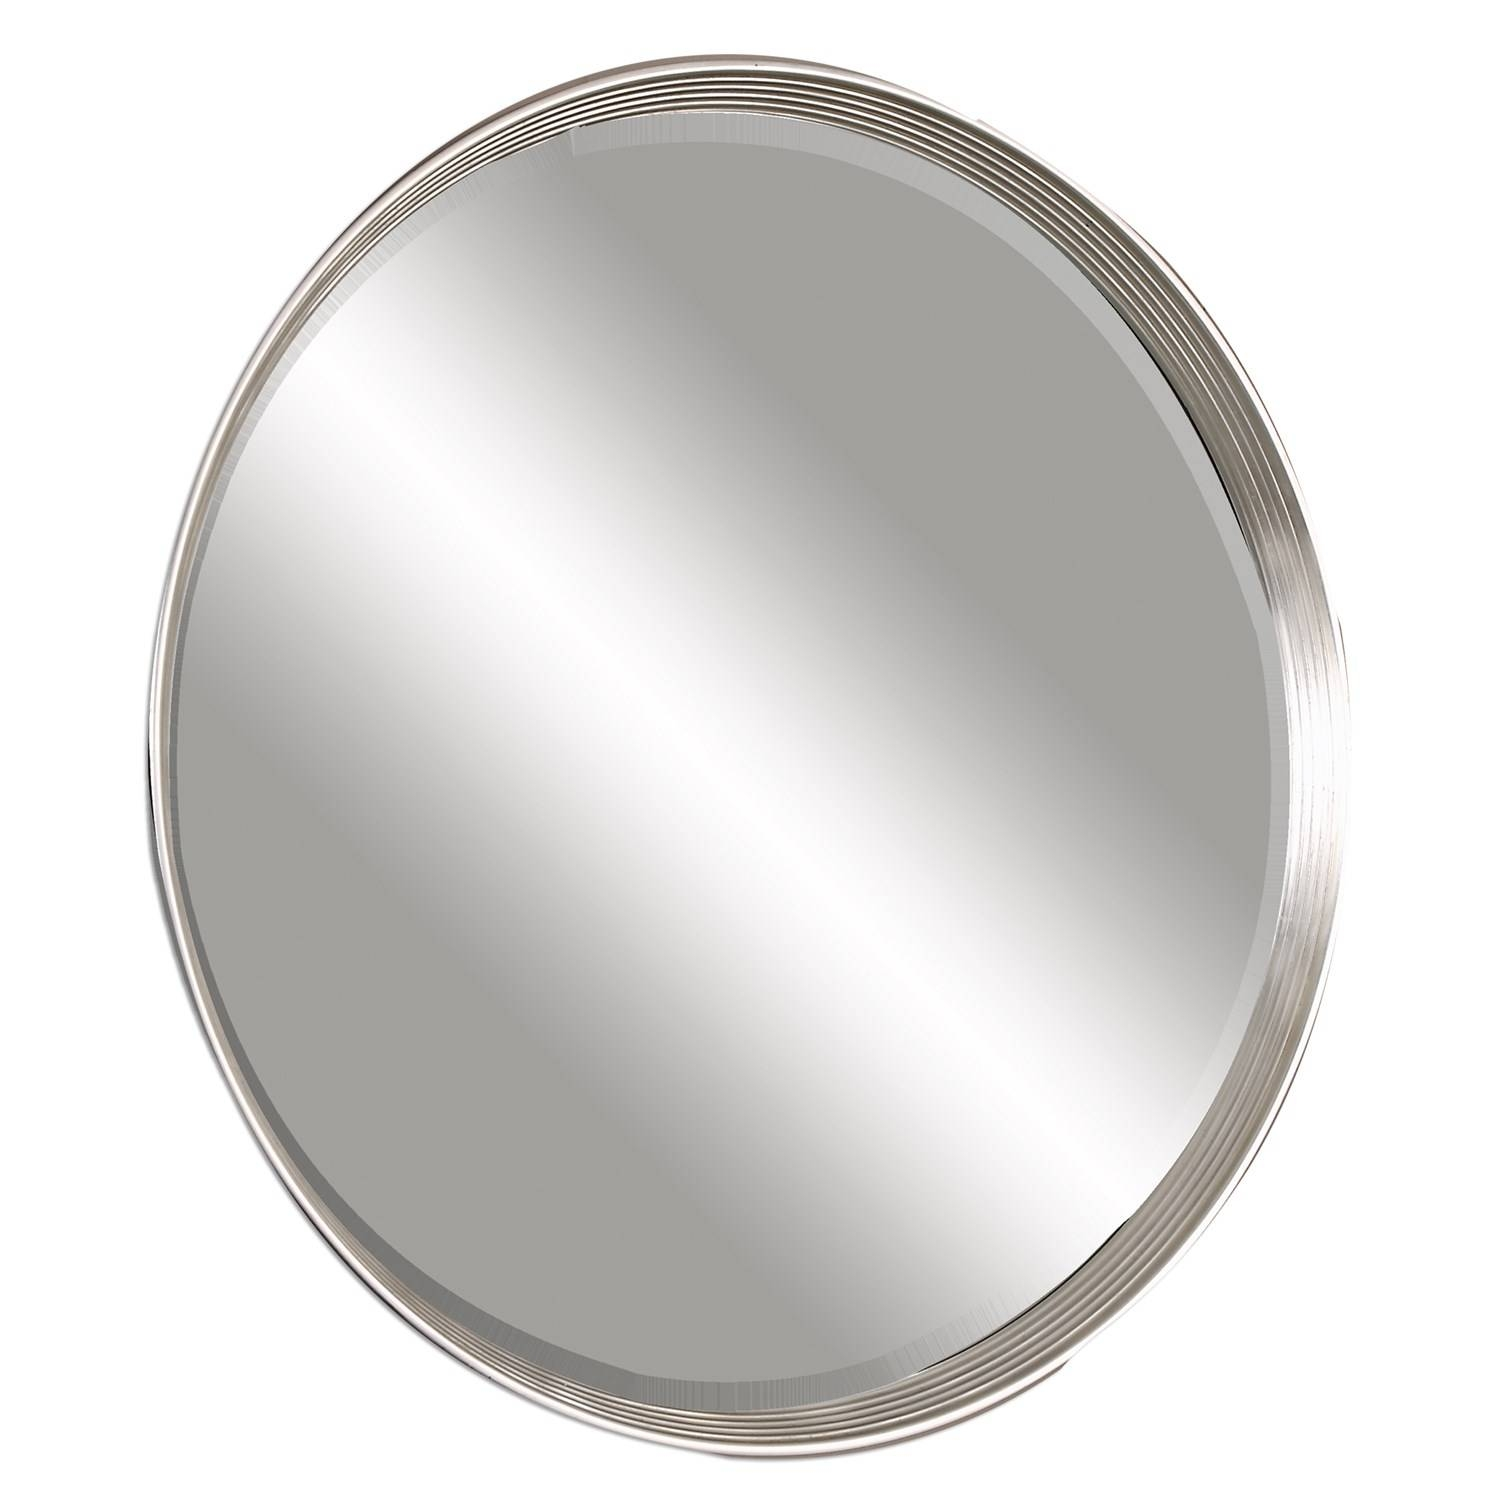 Uttermost 14547 Serenza Round Silver Mirror - Homeclick within Round Silver Mirrors (Image 14 of 15)